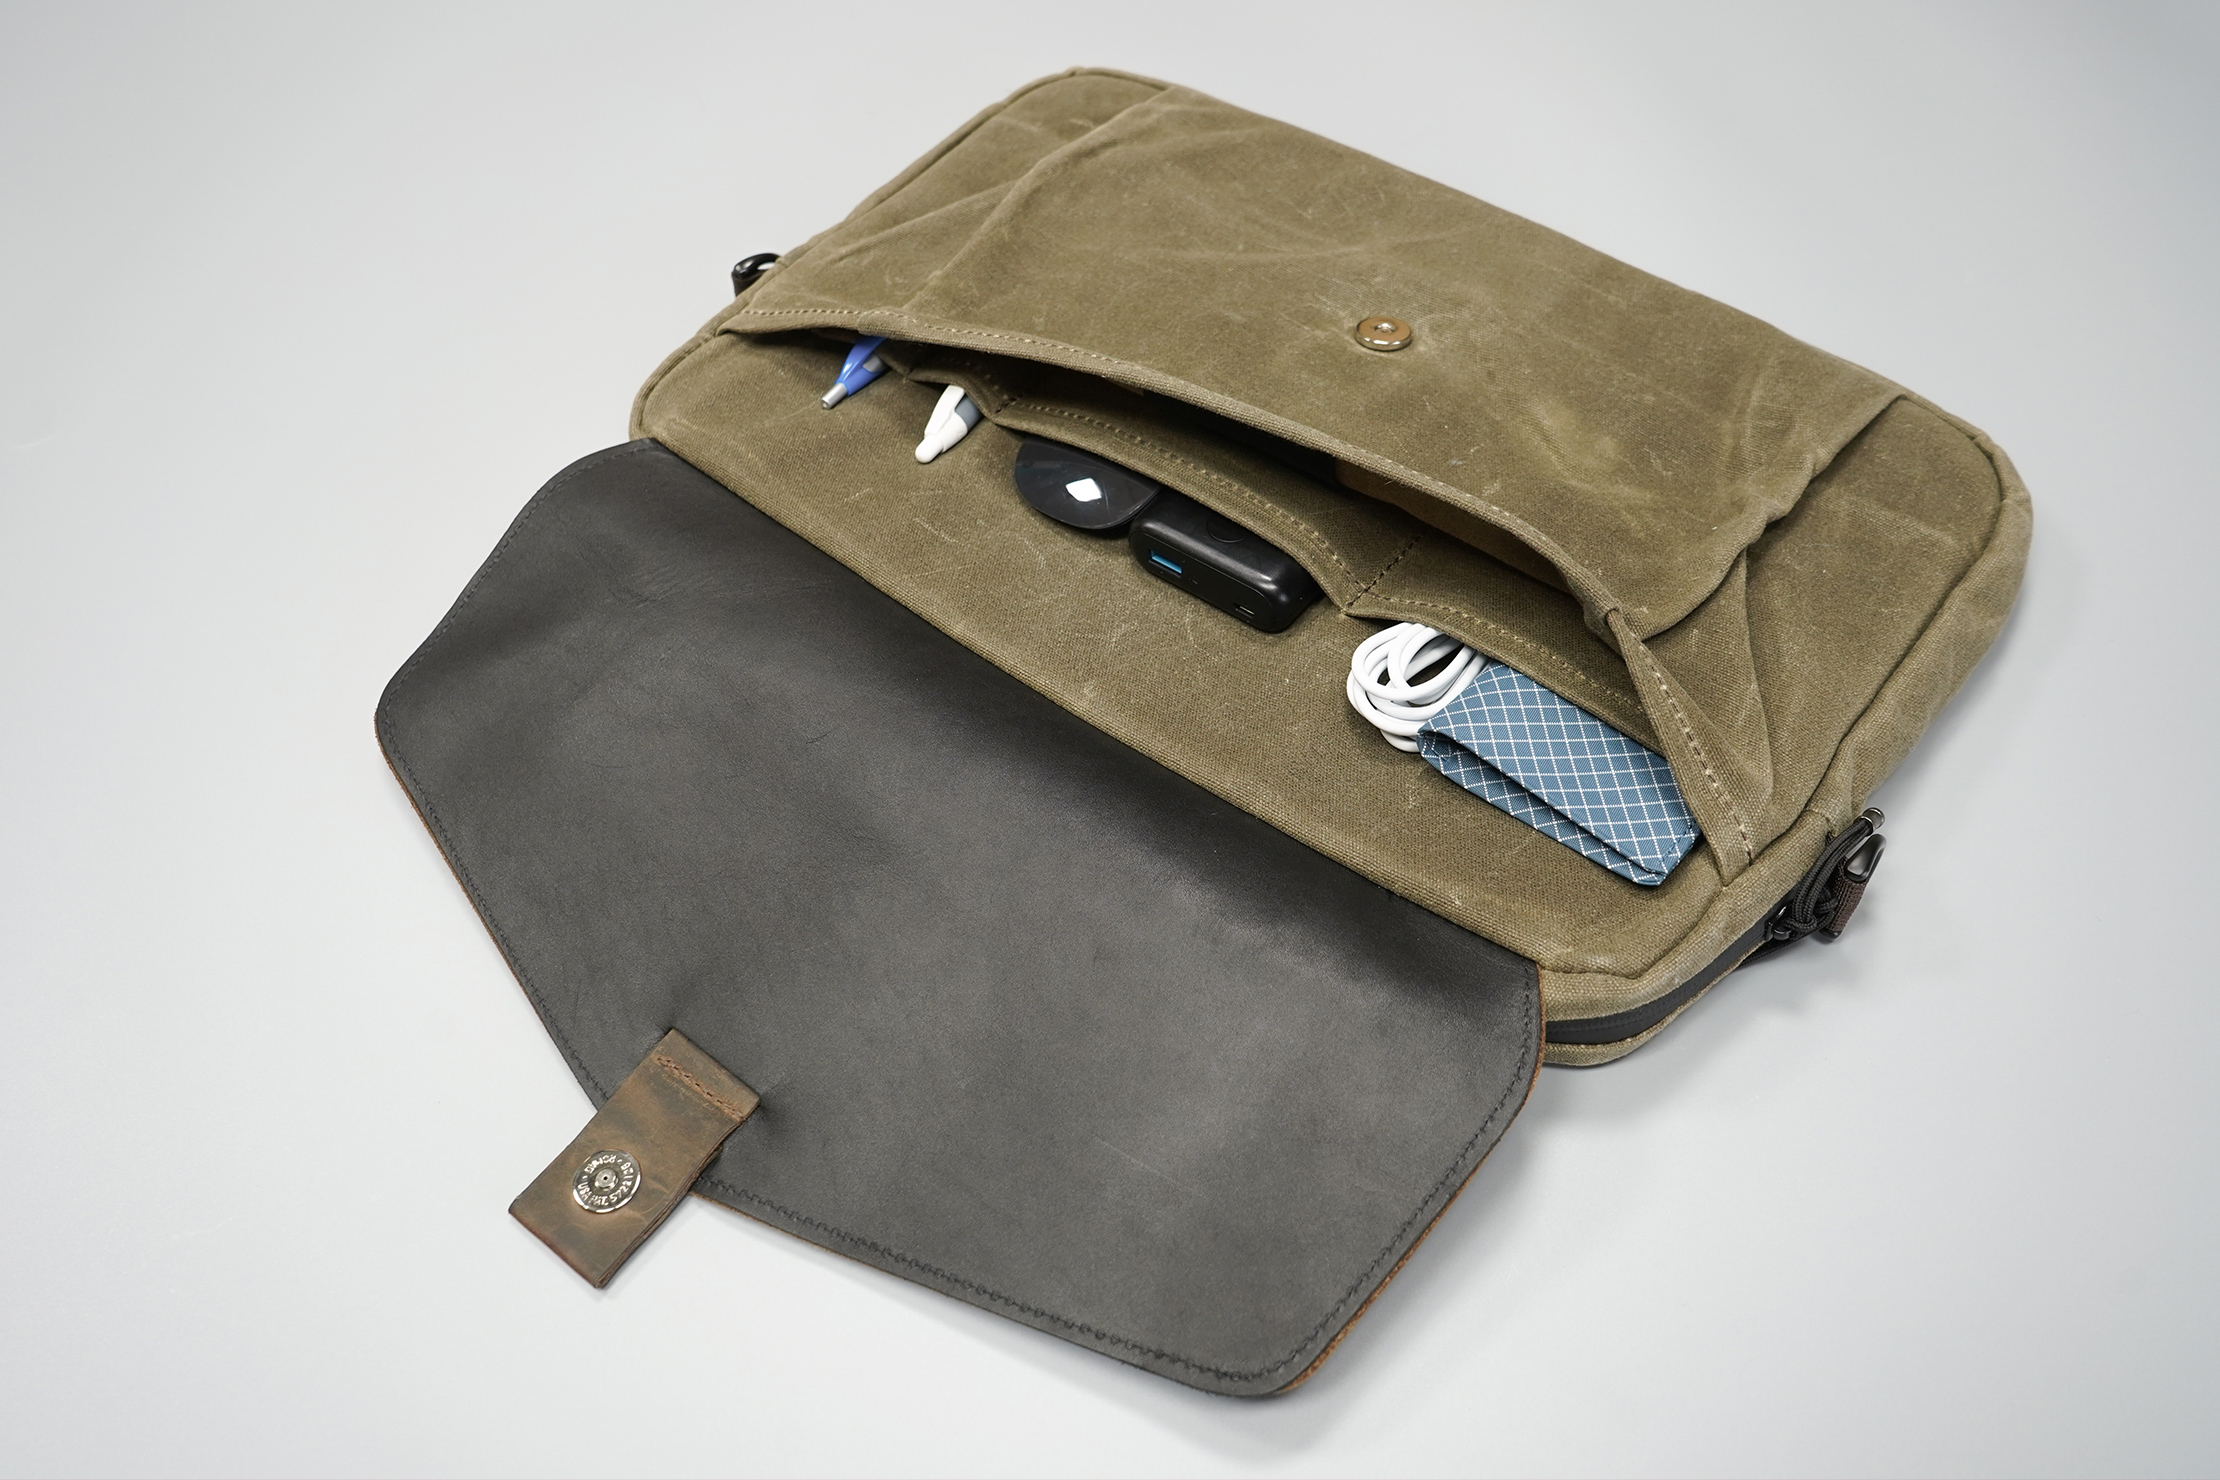 WaterField Designs Outback Duo Laptop Brief | Fill it up, but keep it slim so that the magnet can still home in